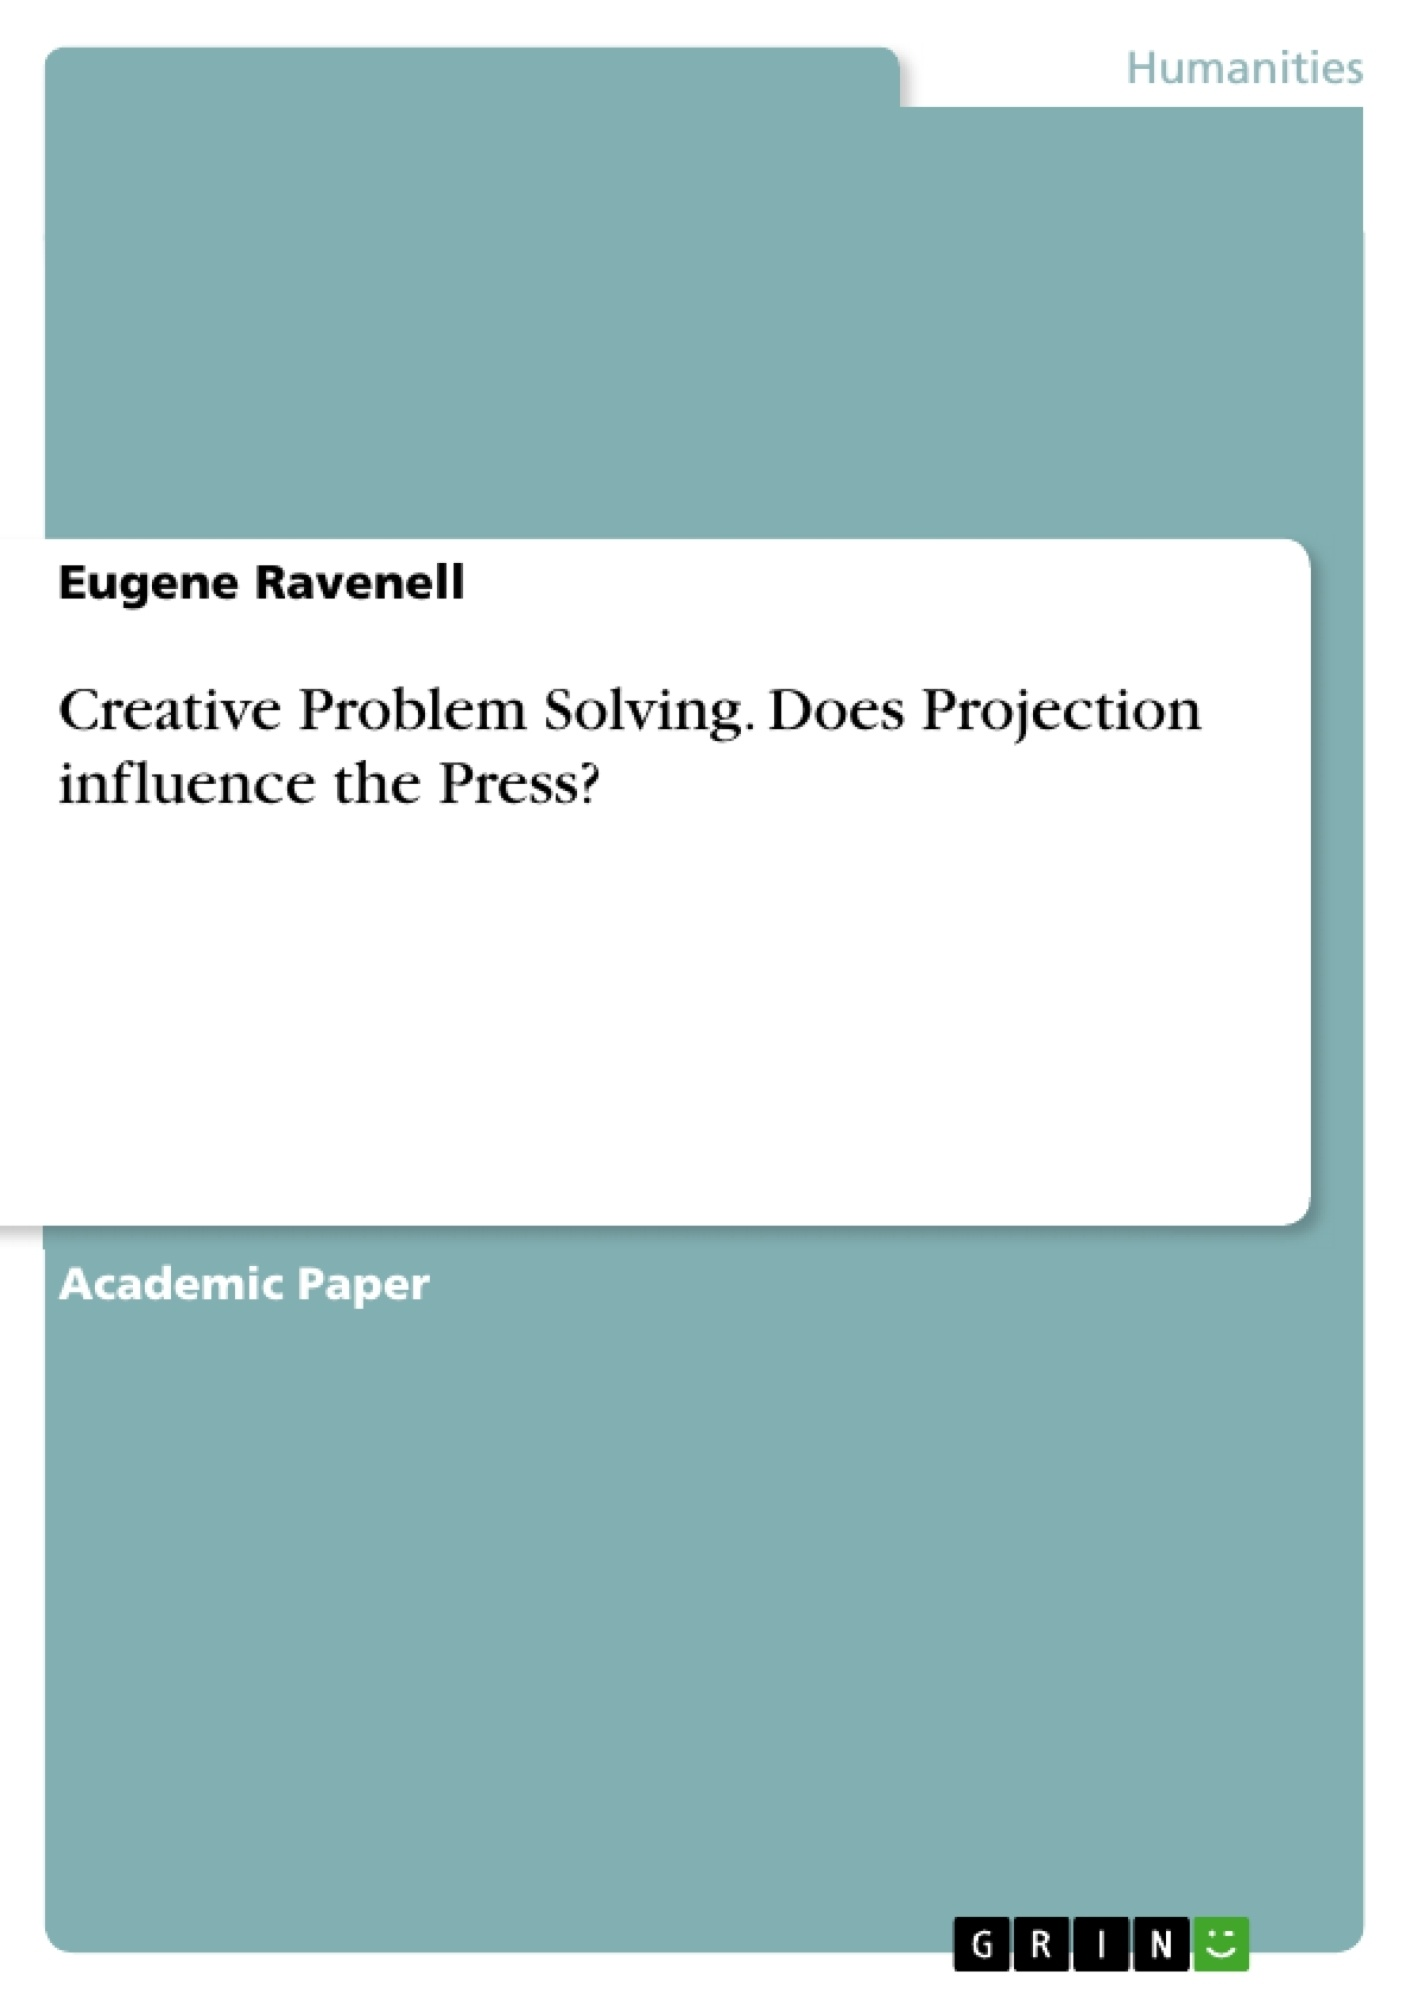 Title: Creative Problem Solving. Does Projection influence the Press?